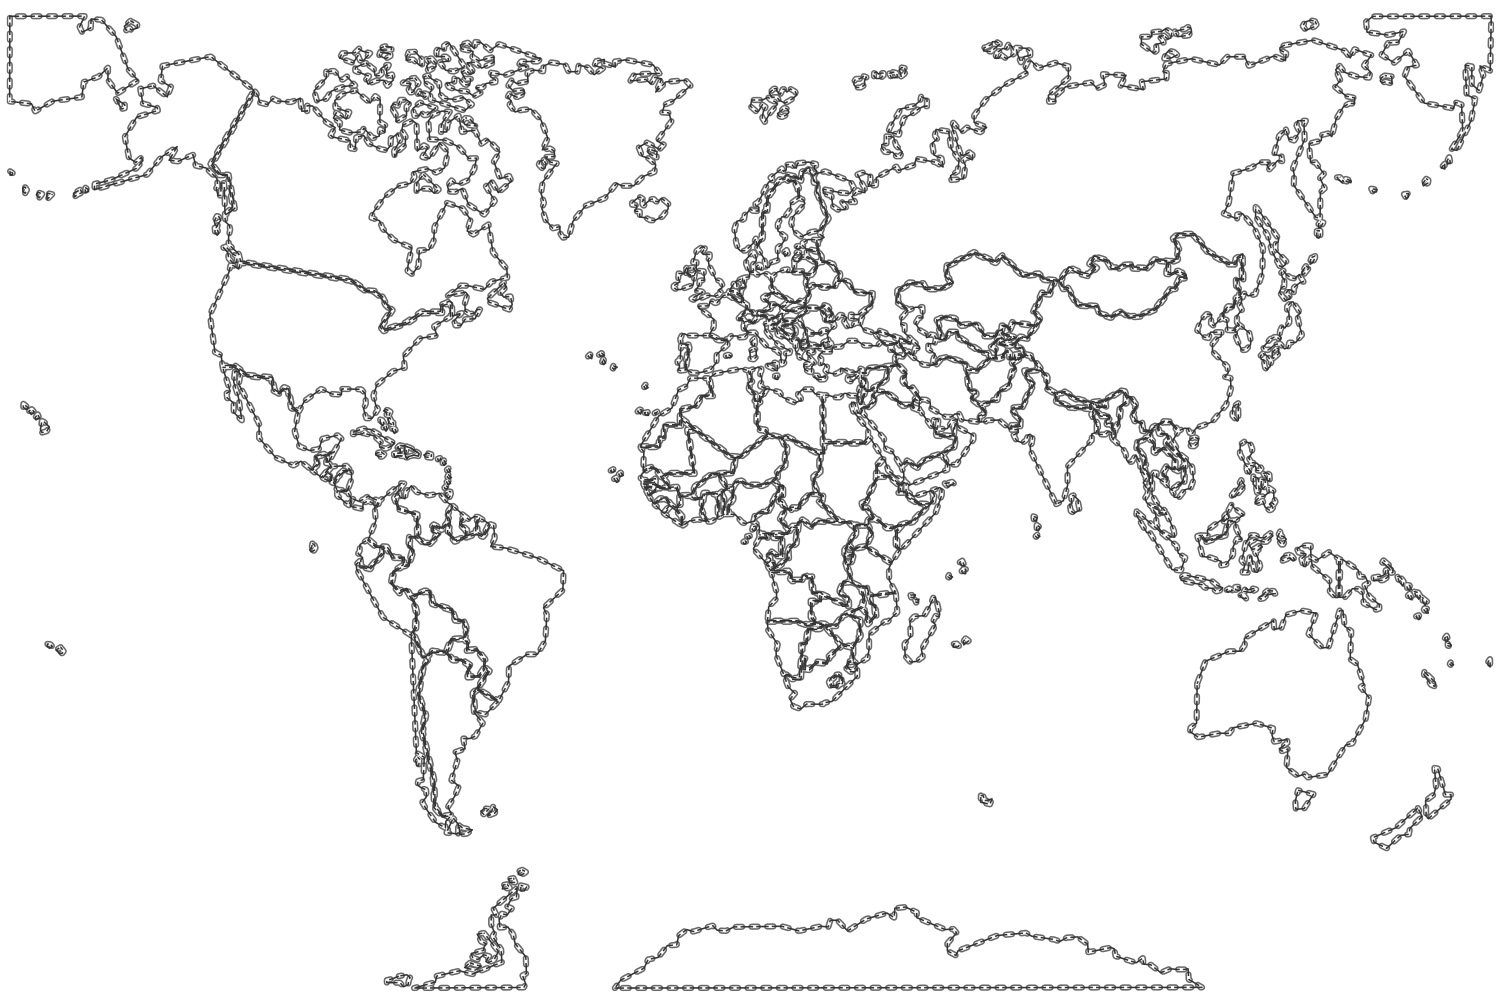 Earth map drawing at getdrawings free for personal use earth 1500x999 world map coloring page for kids drawing of gumiabroncs Images